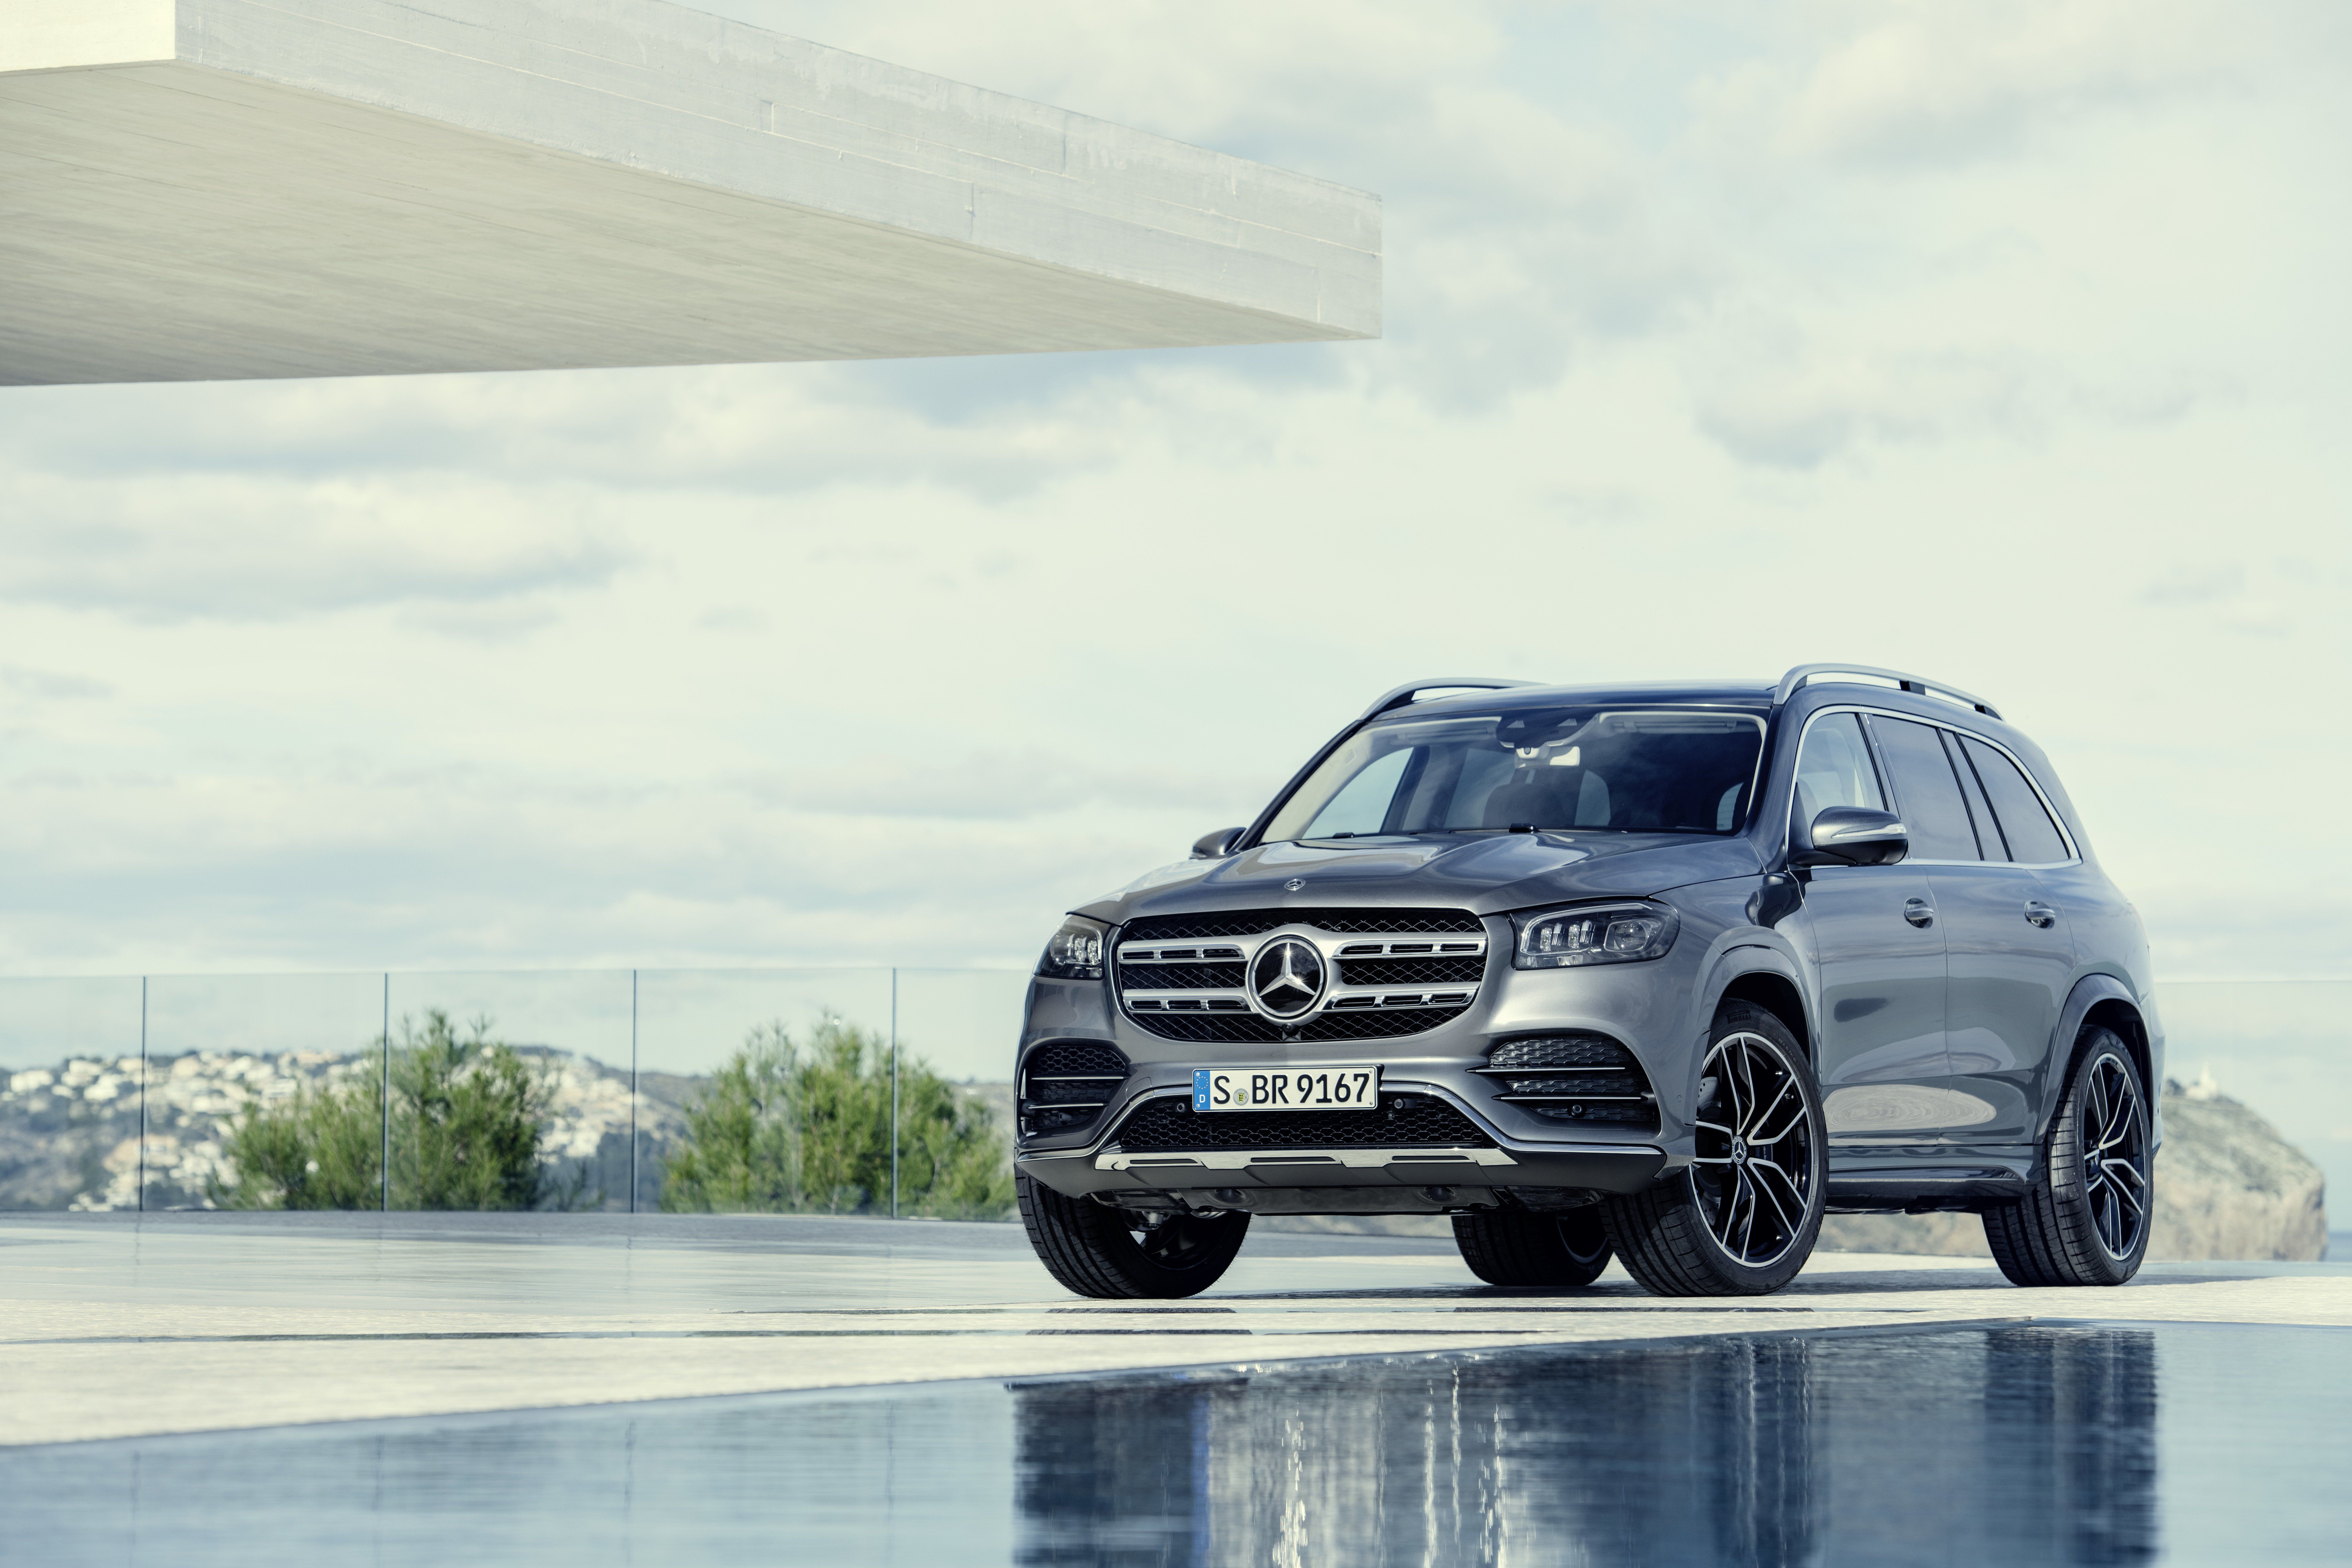 Wallpaper Of The Day 2020 Mercedes Benz Gls Benz Suv Mercedes